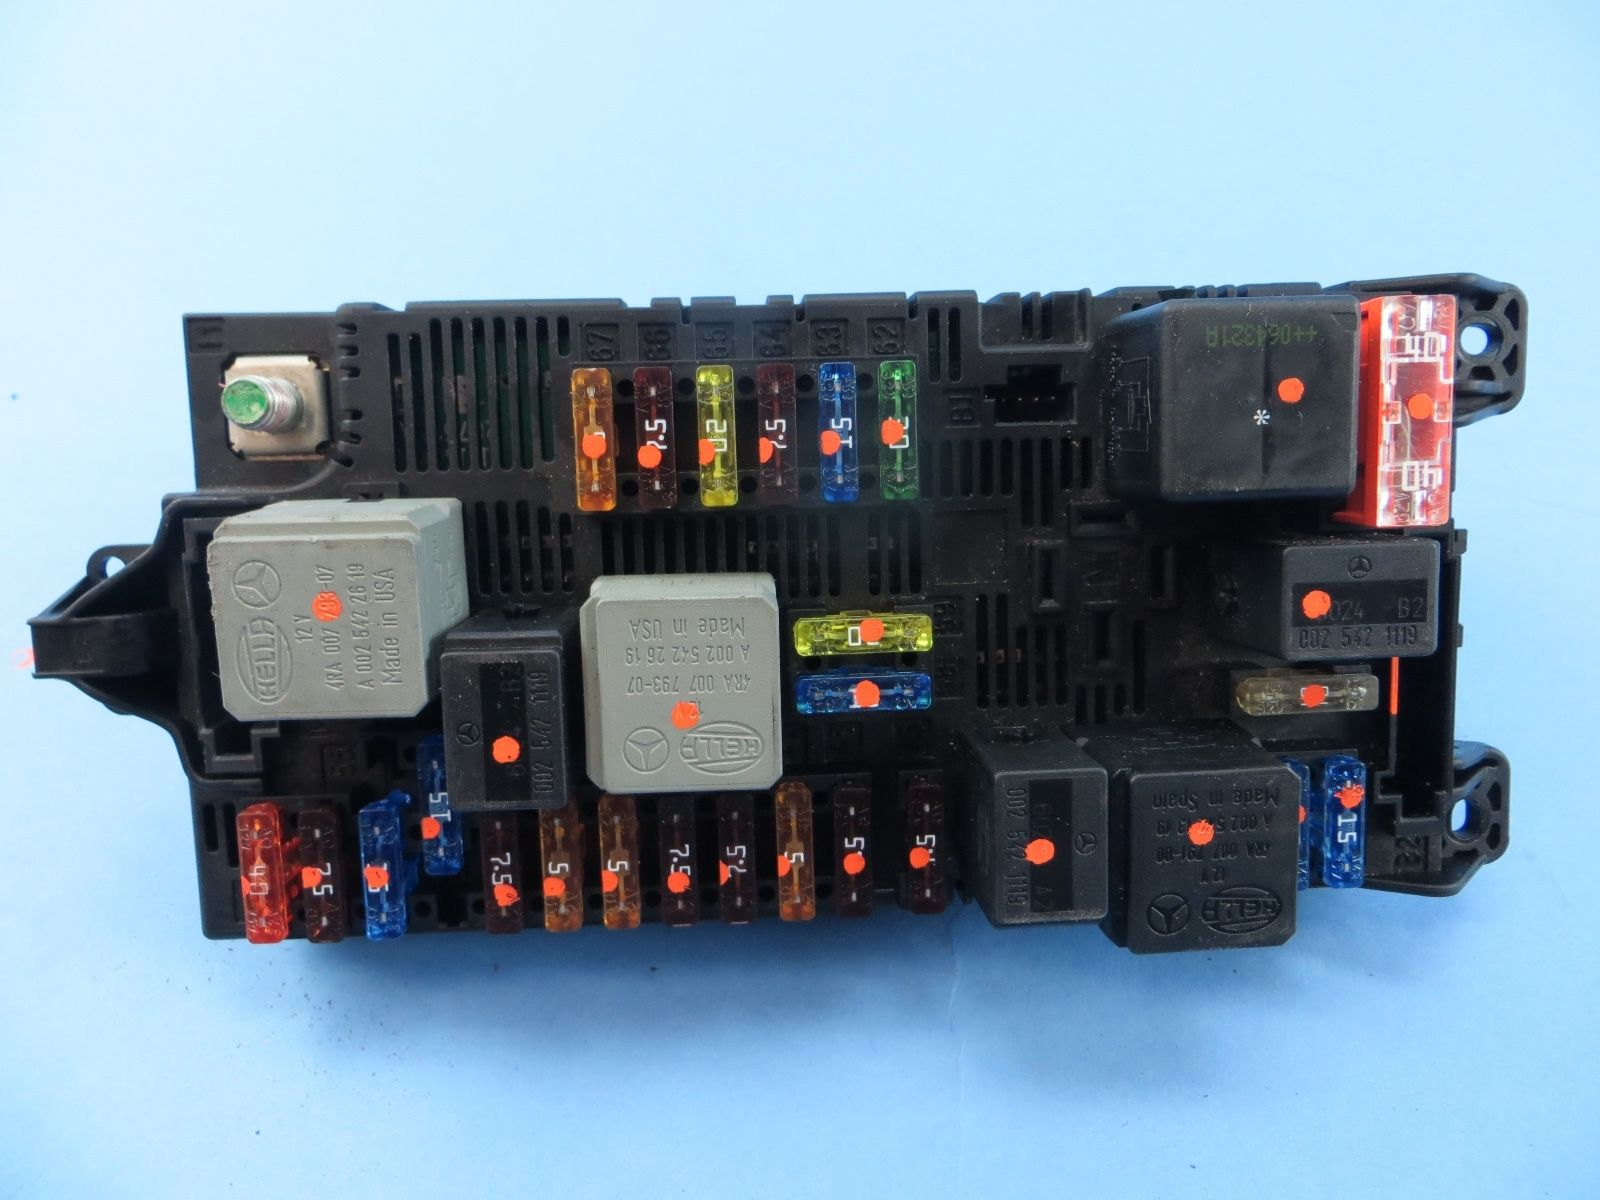 a38e1804 62f3 4299 b085 fd96ff7256fd 2007 cls550 fuse diagram 2007 cls550 fuse box \u2022 indy500 co mercedes cls550 fuse box diagram at reclaimingppi.co